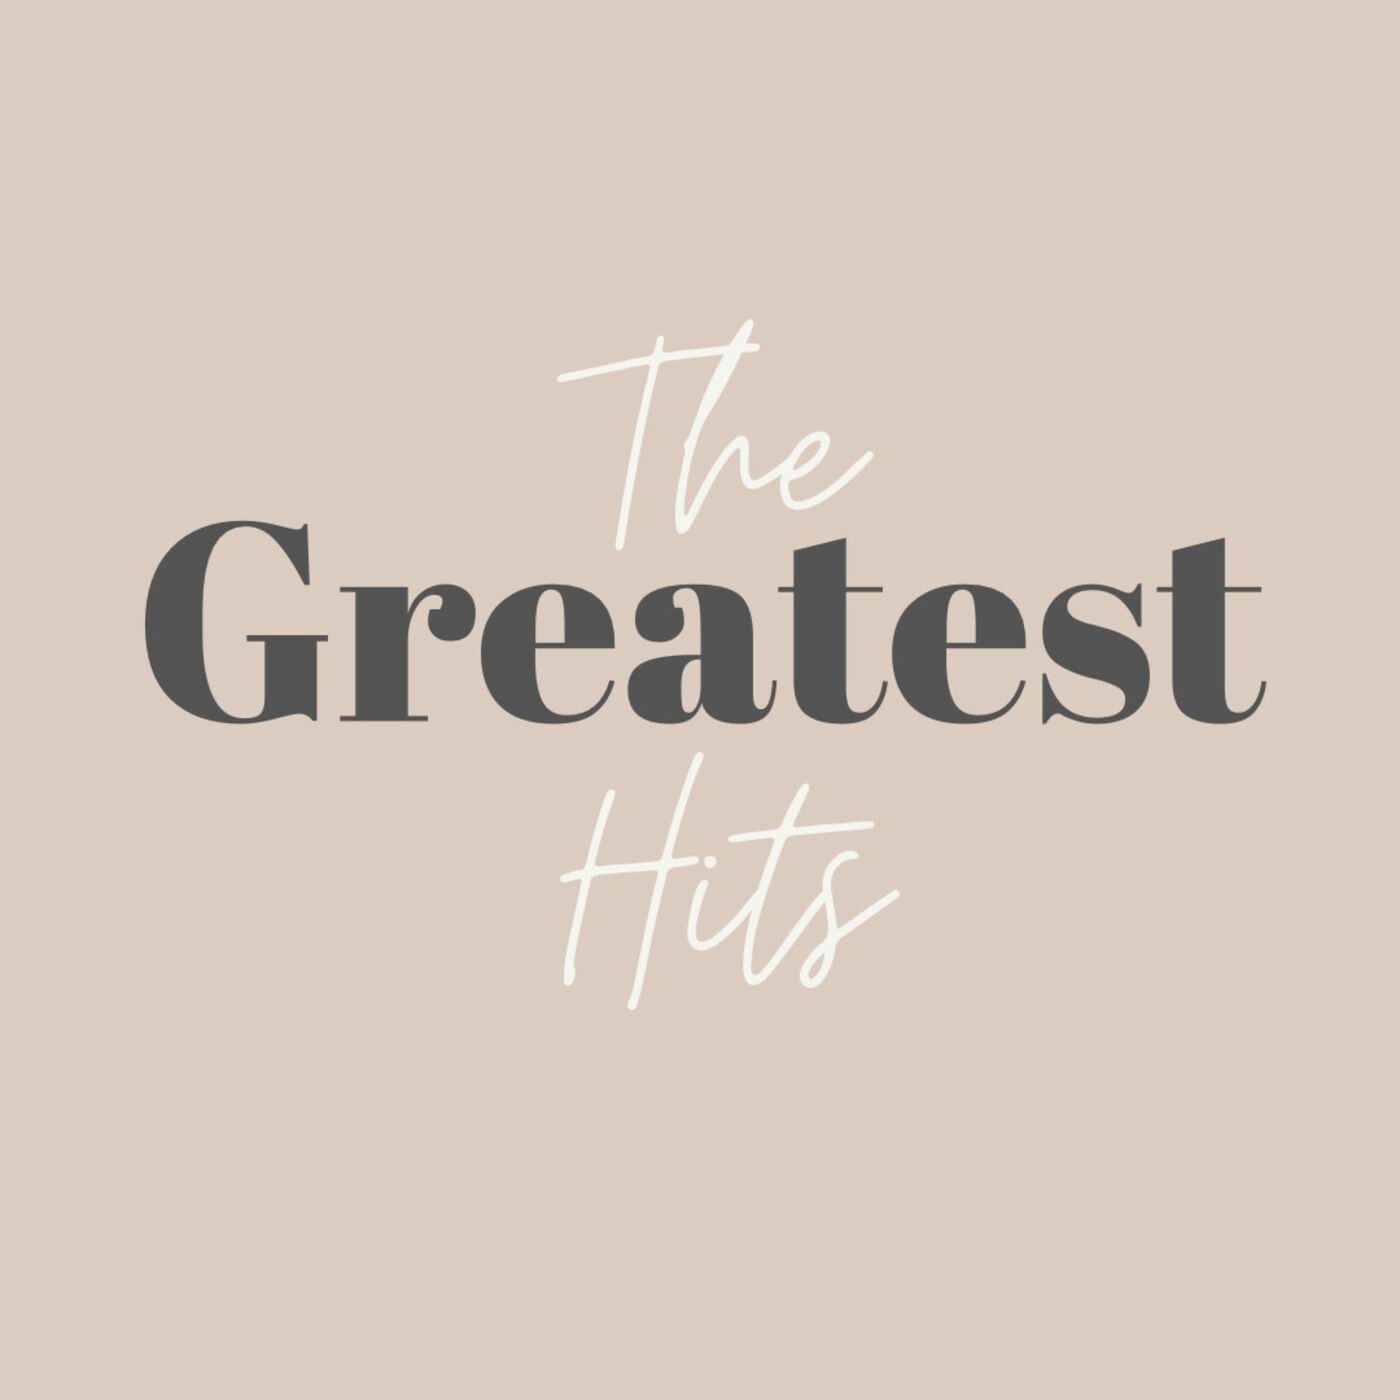 The Greatest Hits-Week 3